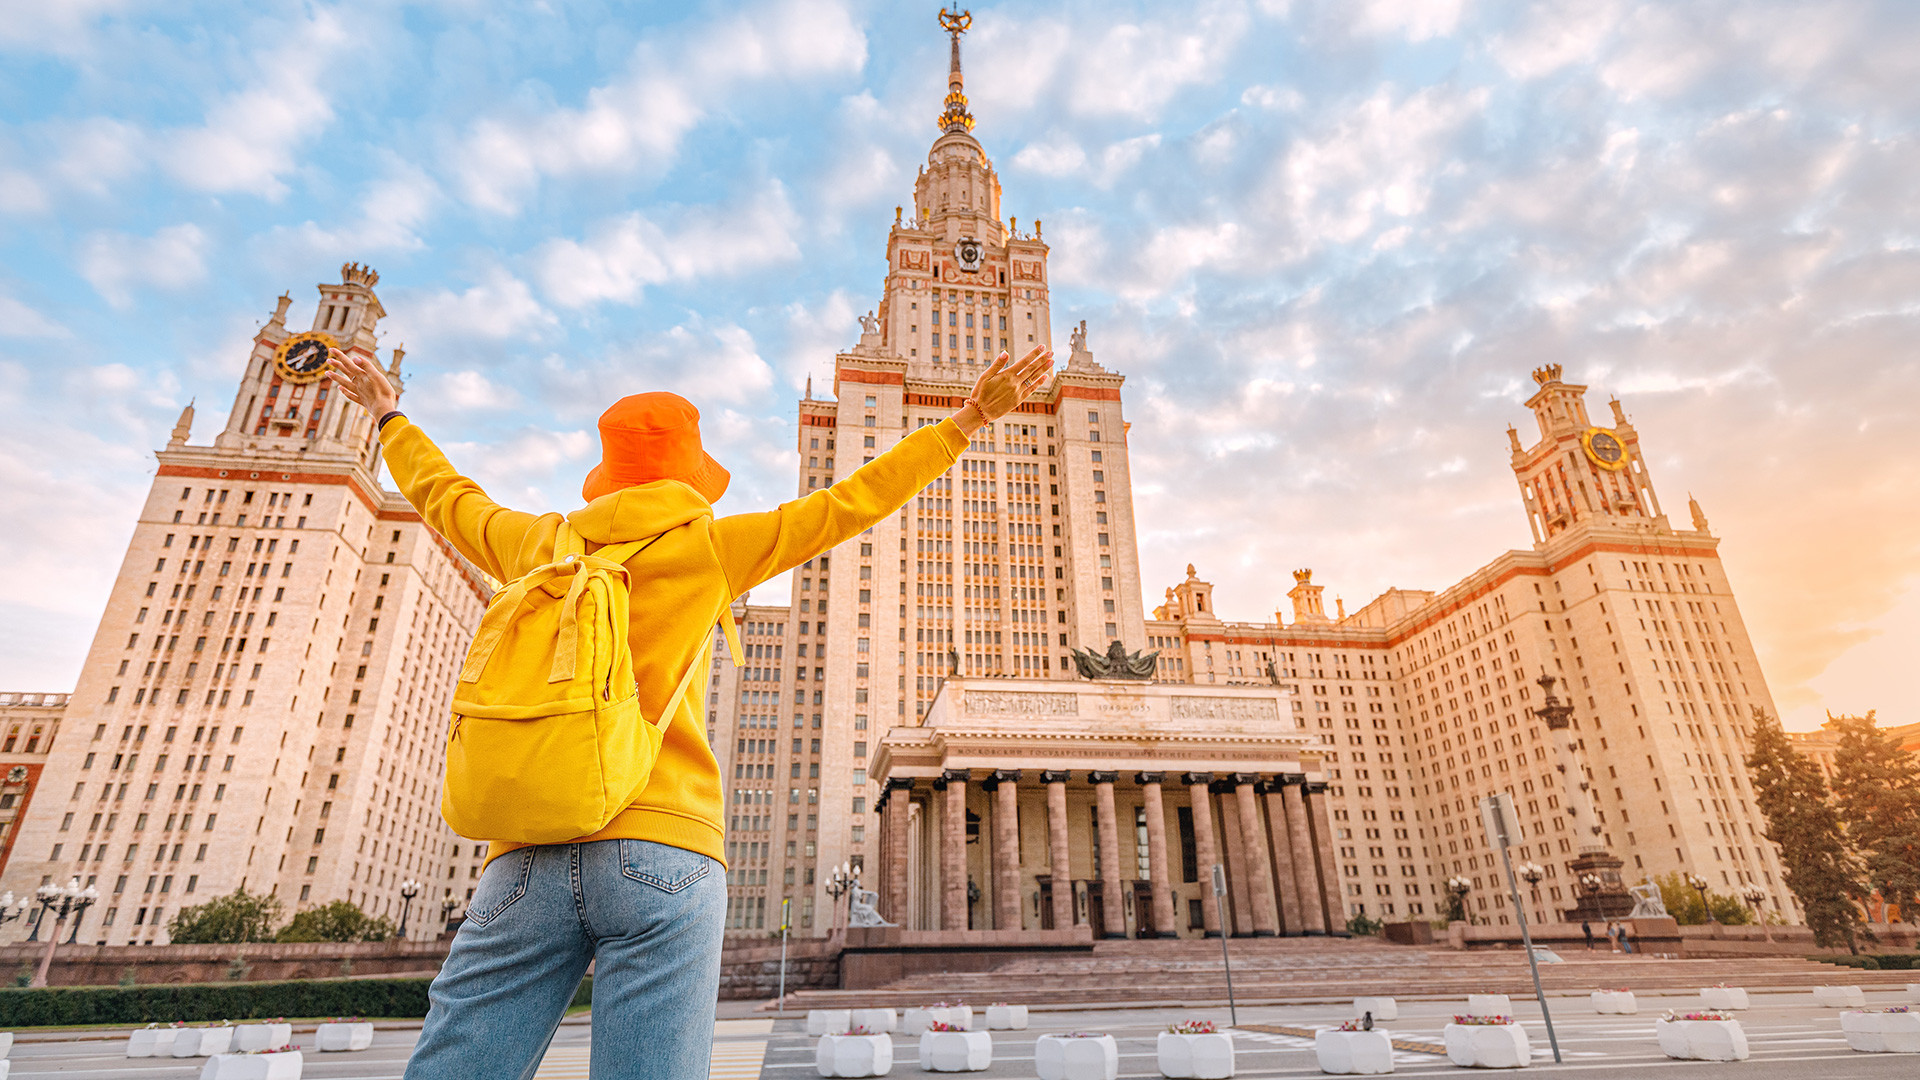 A young student rejoices of the beginning of the school year in front of the main building of Lomonosov Moscow State University